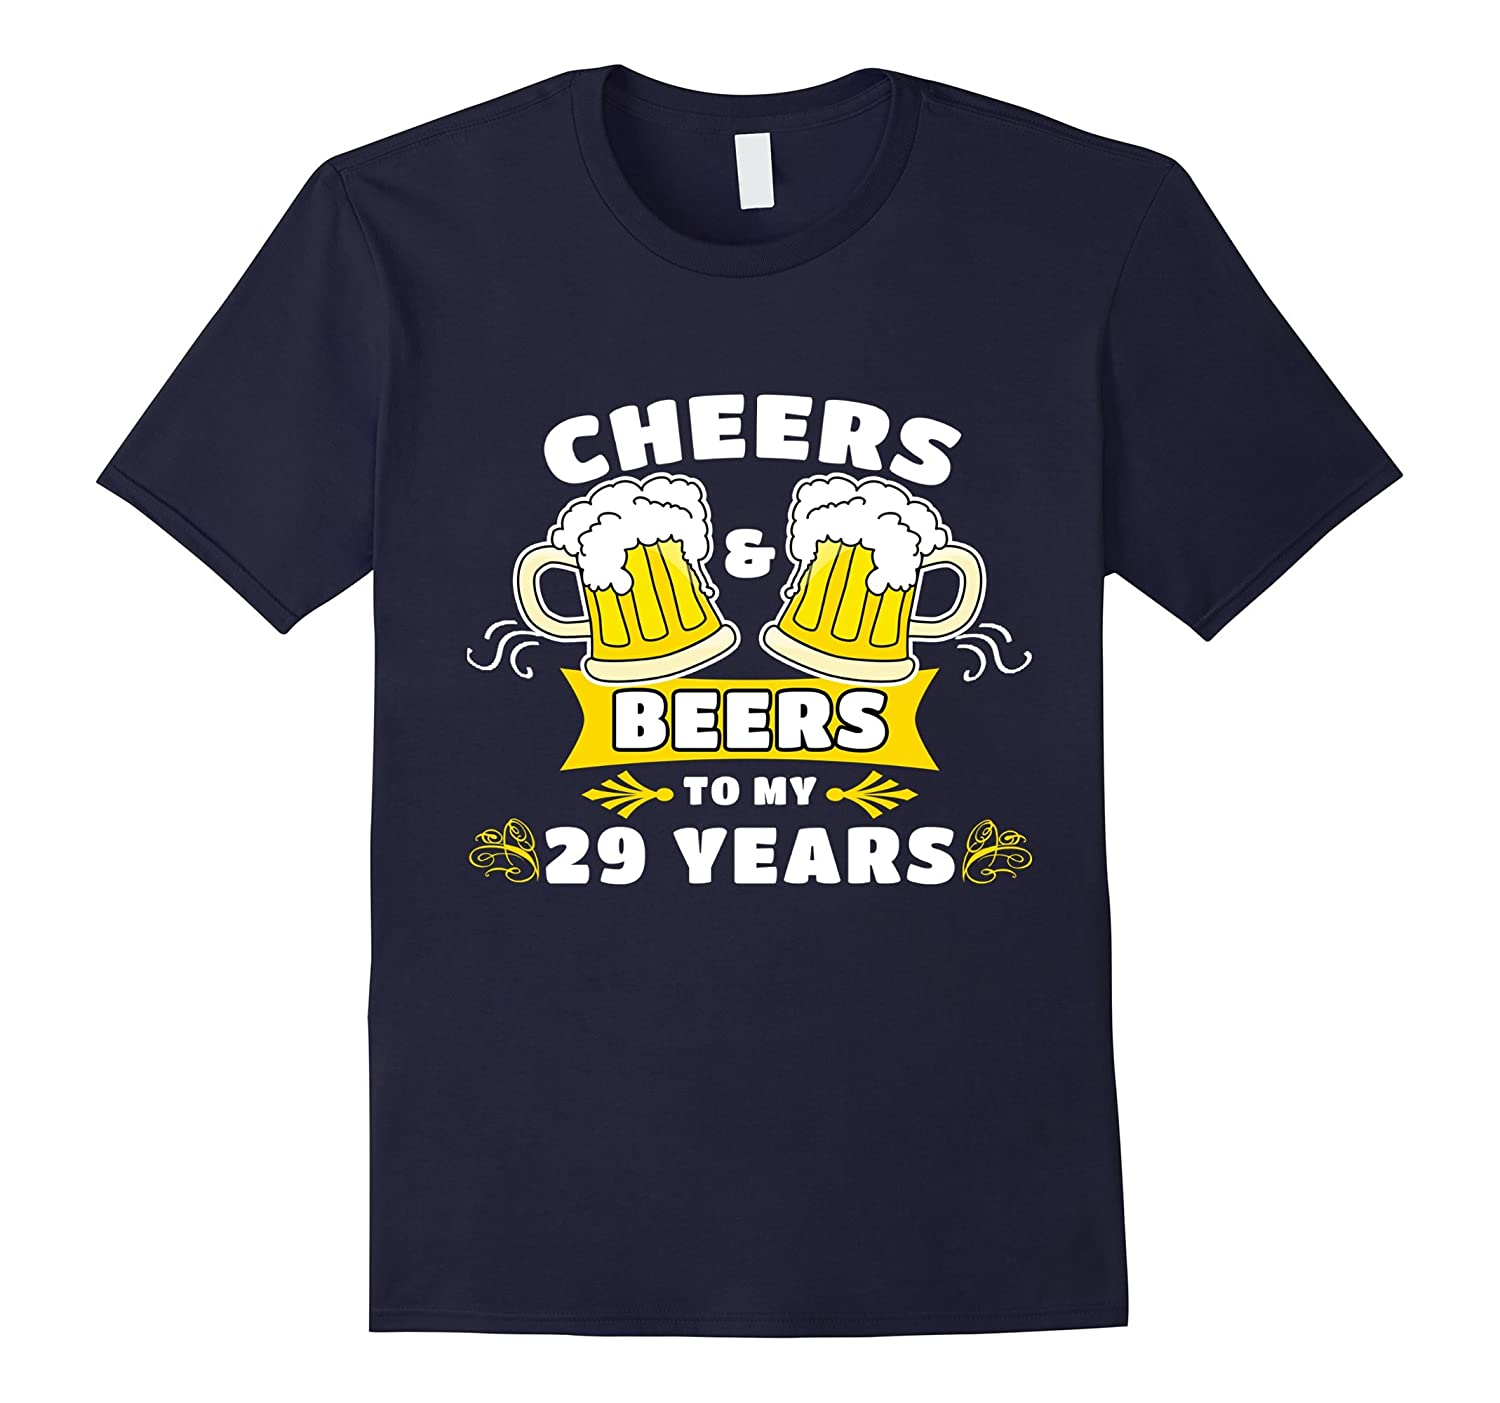 Cheers And Beers To My 29 Years T-Shirt 29th Birthday Gift-BN